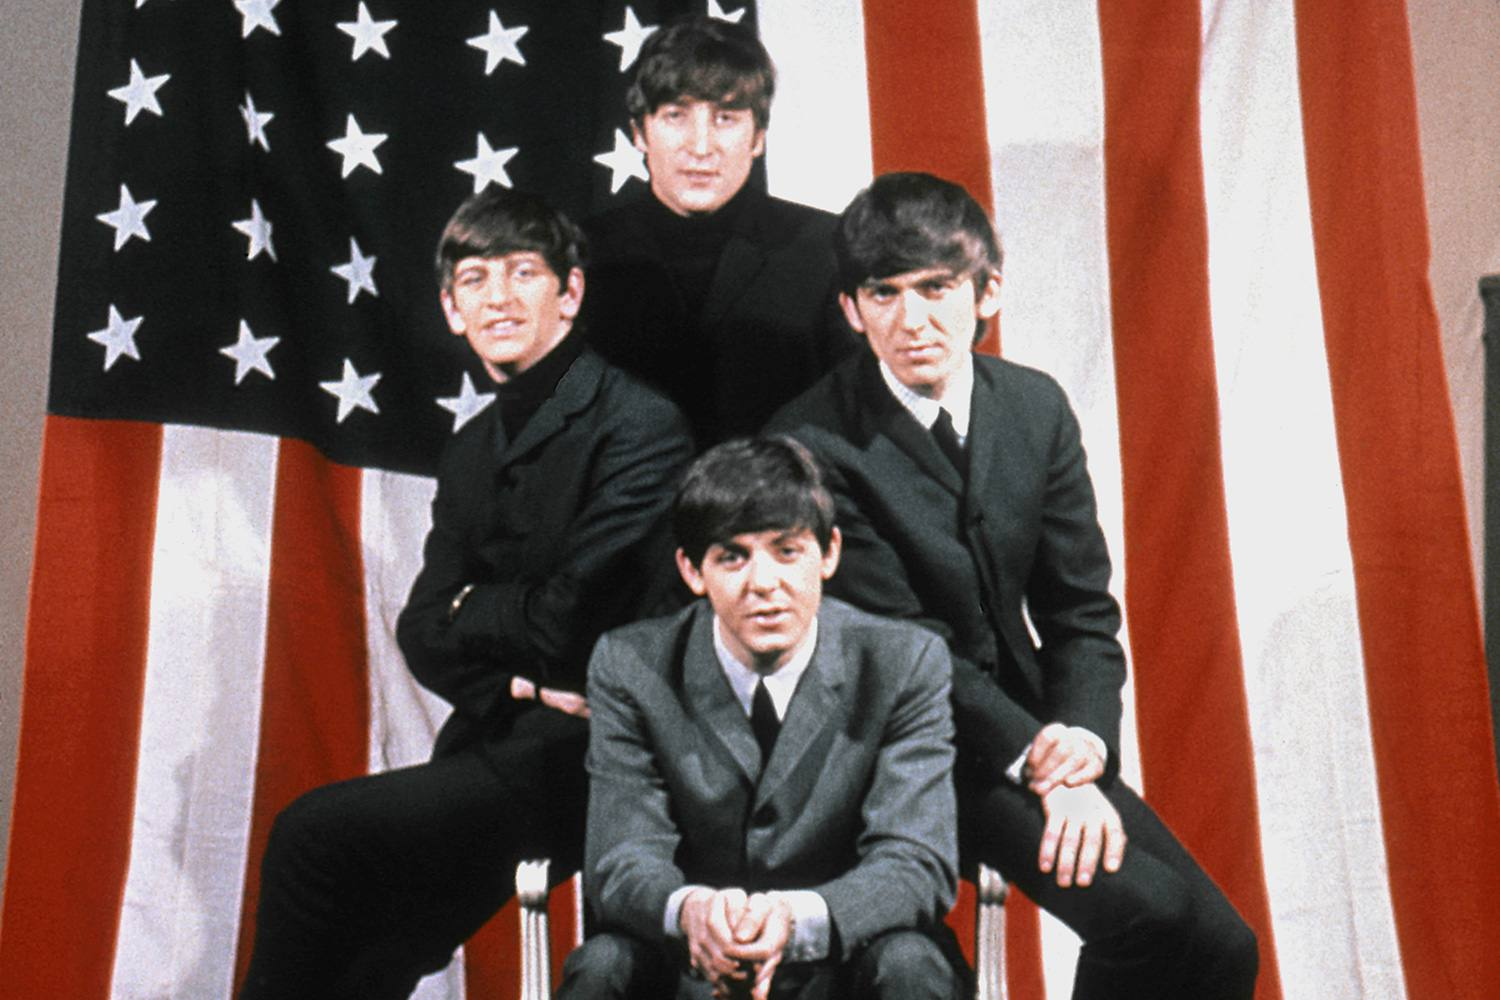 The Beatles color promotional photograph in front of U.S. flag.